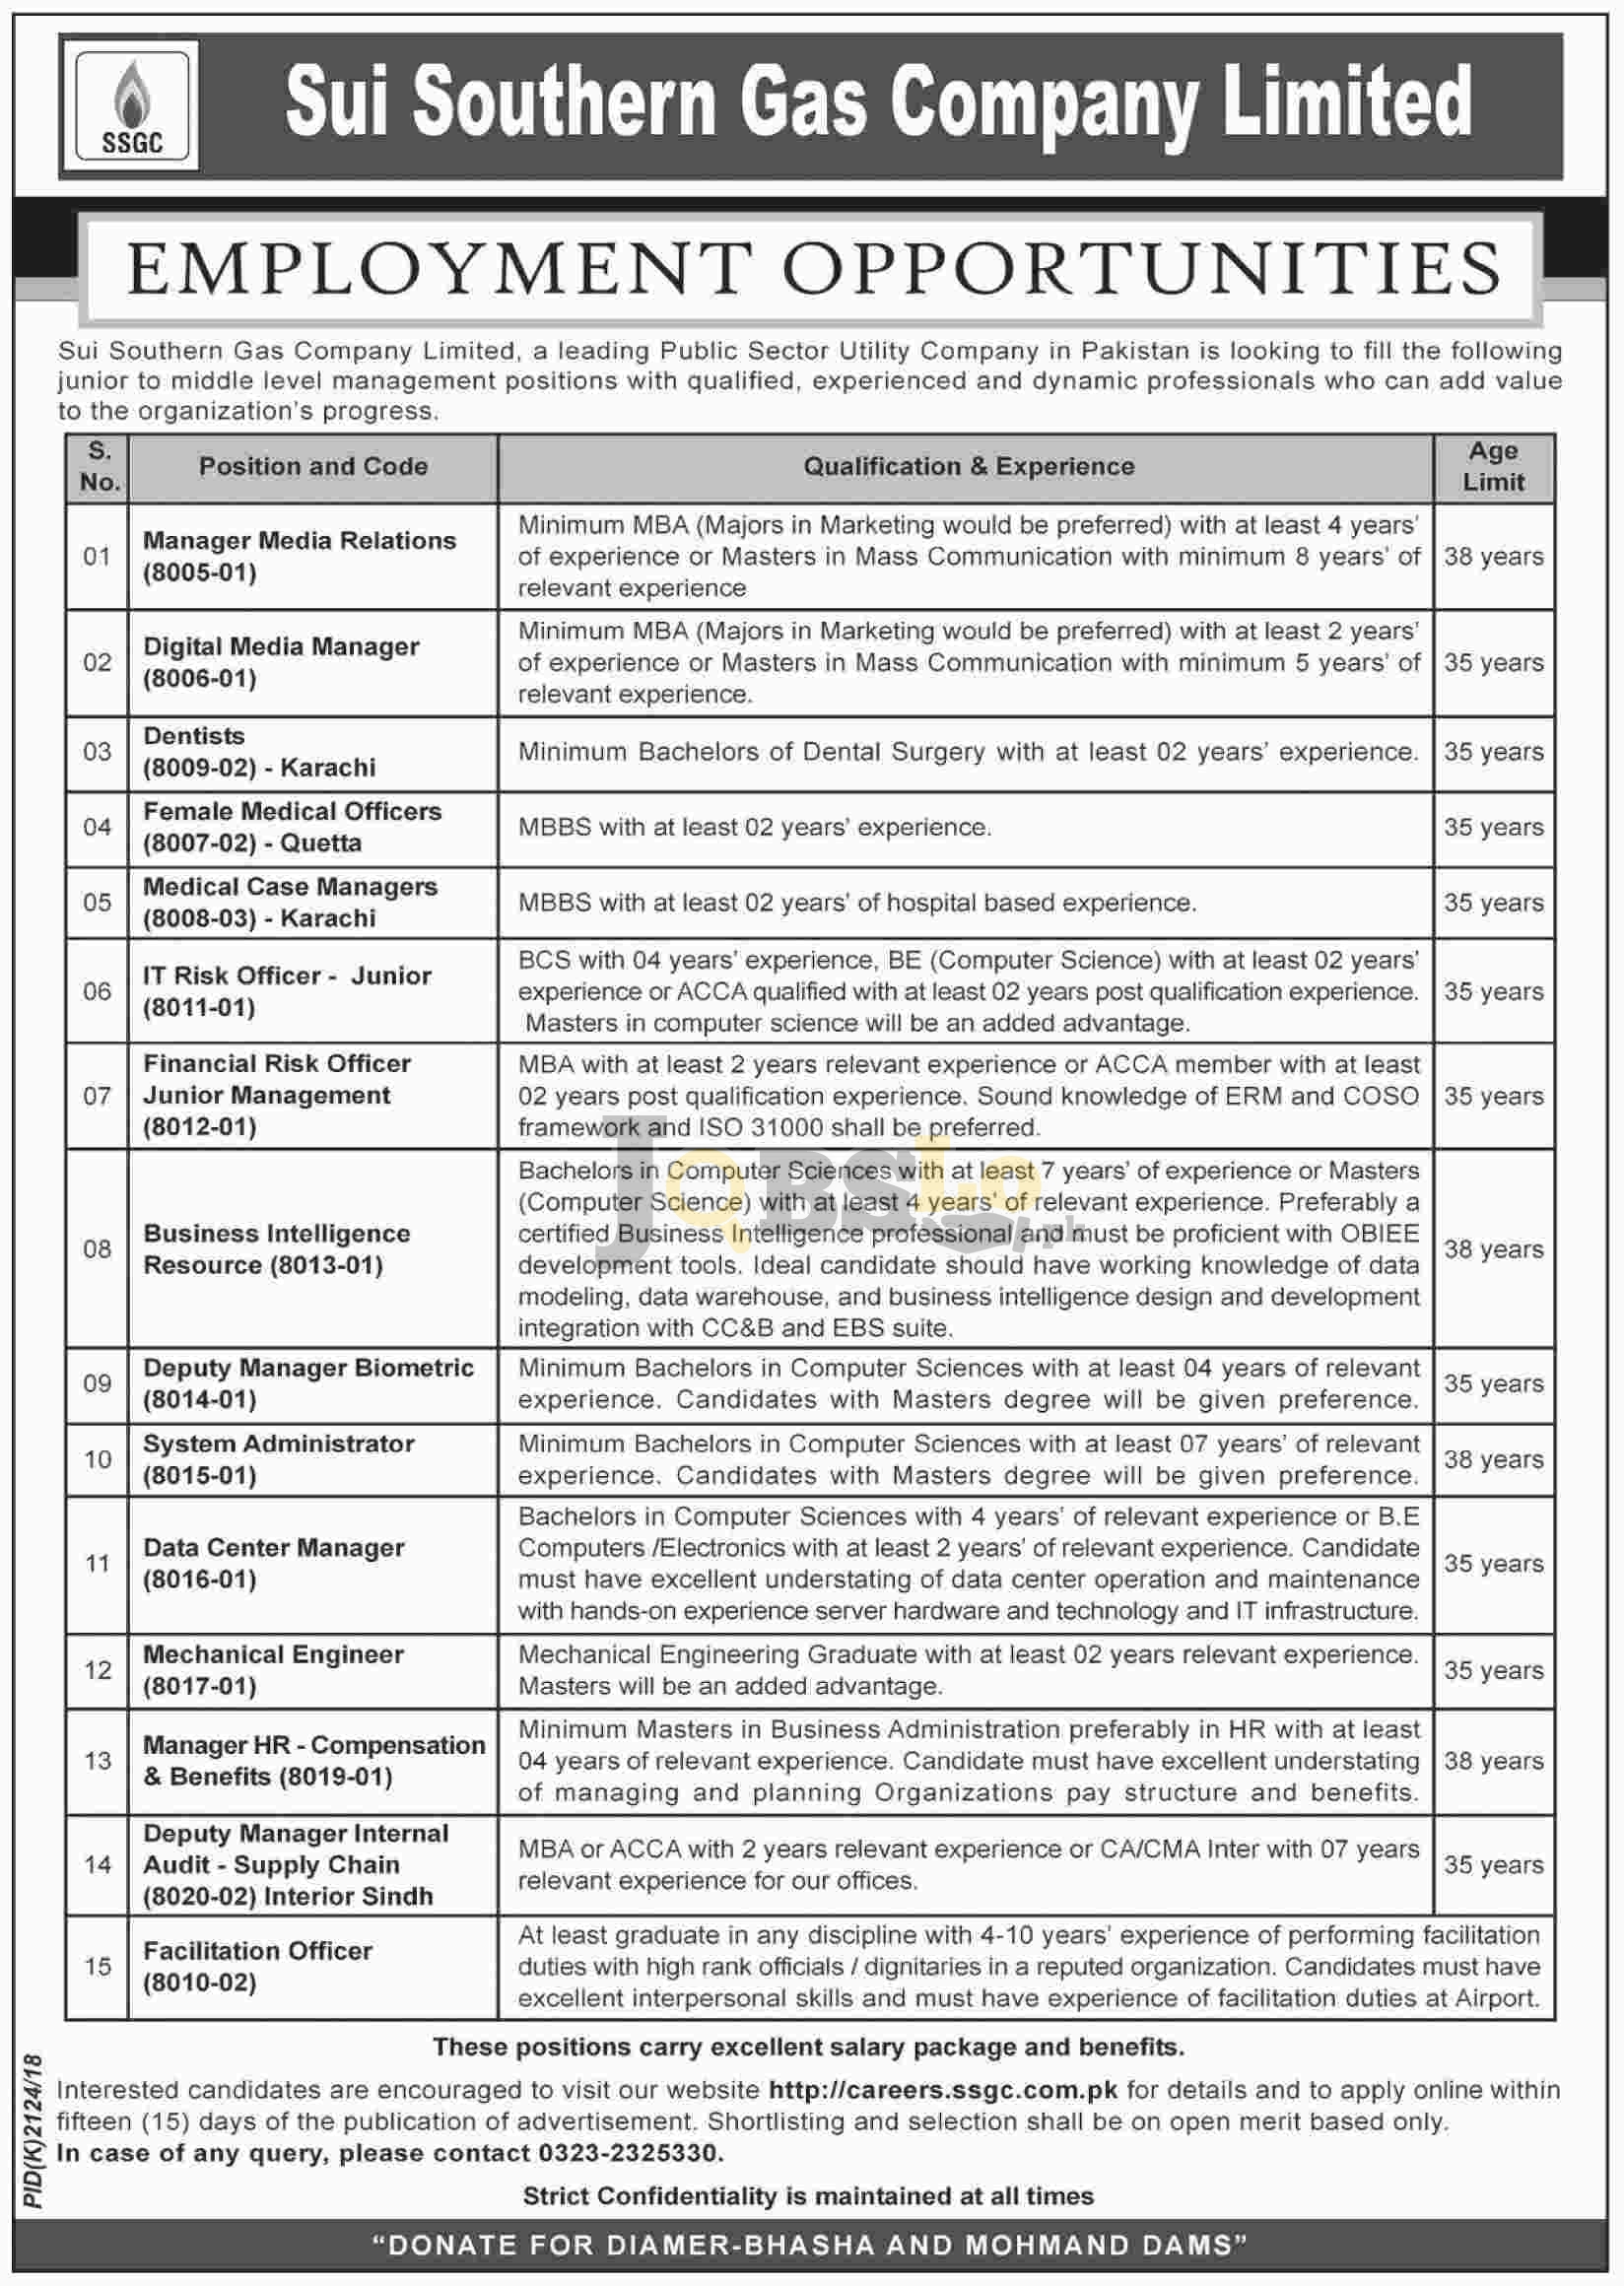 Sui Southern Gas Company SSGC Jobs 2018 Karachi Apply Online Latest Advertisement